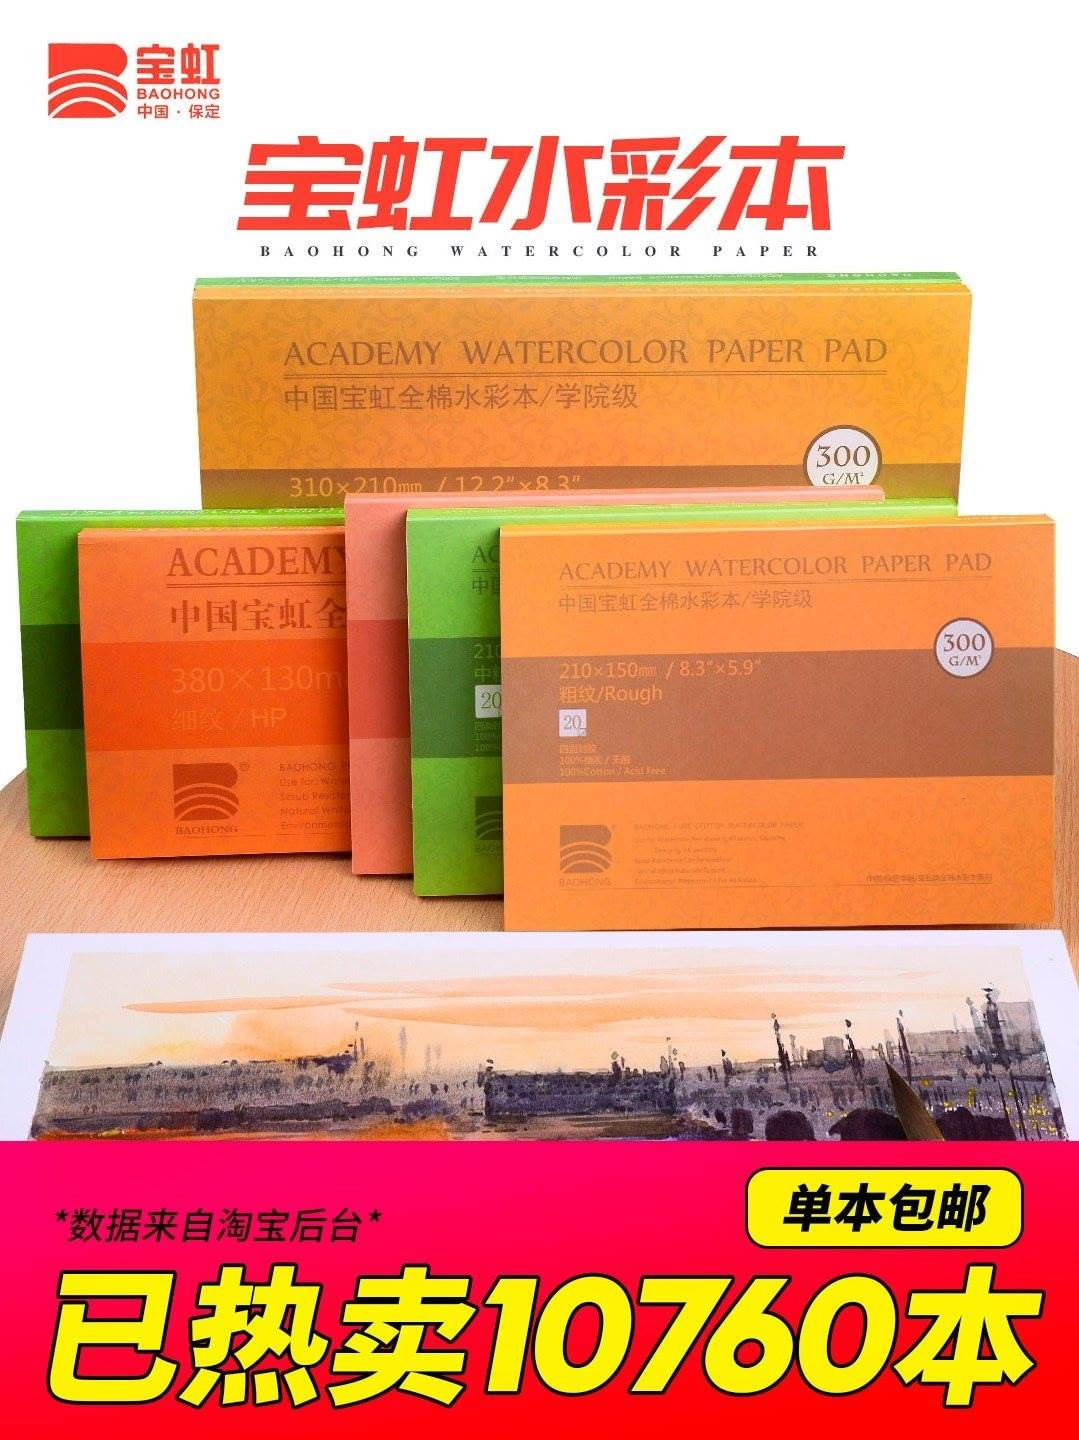 Baoding baohong water color paper watercolor paper in the